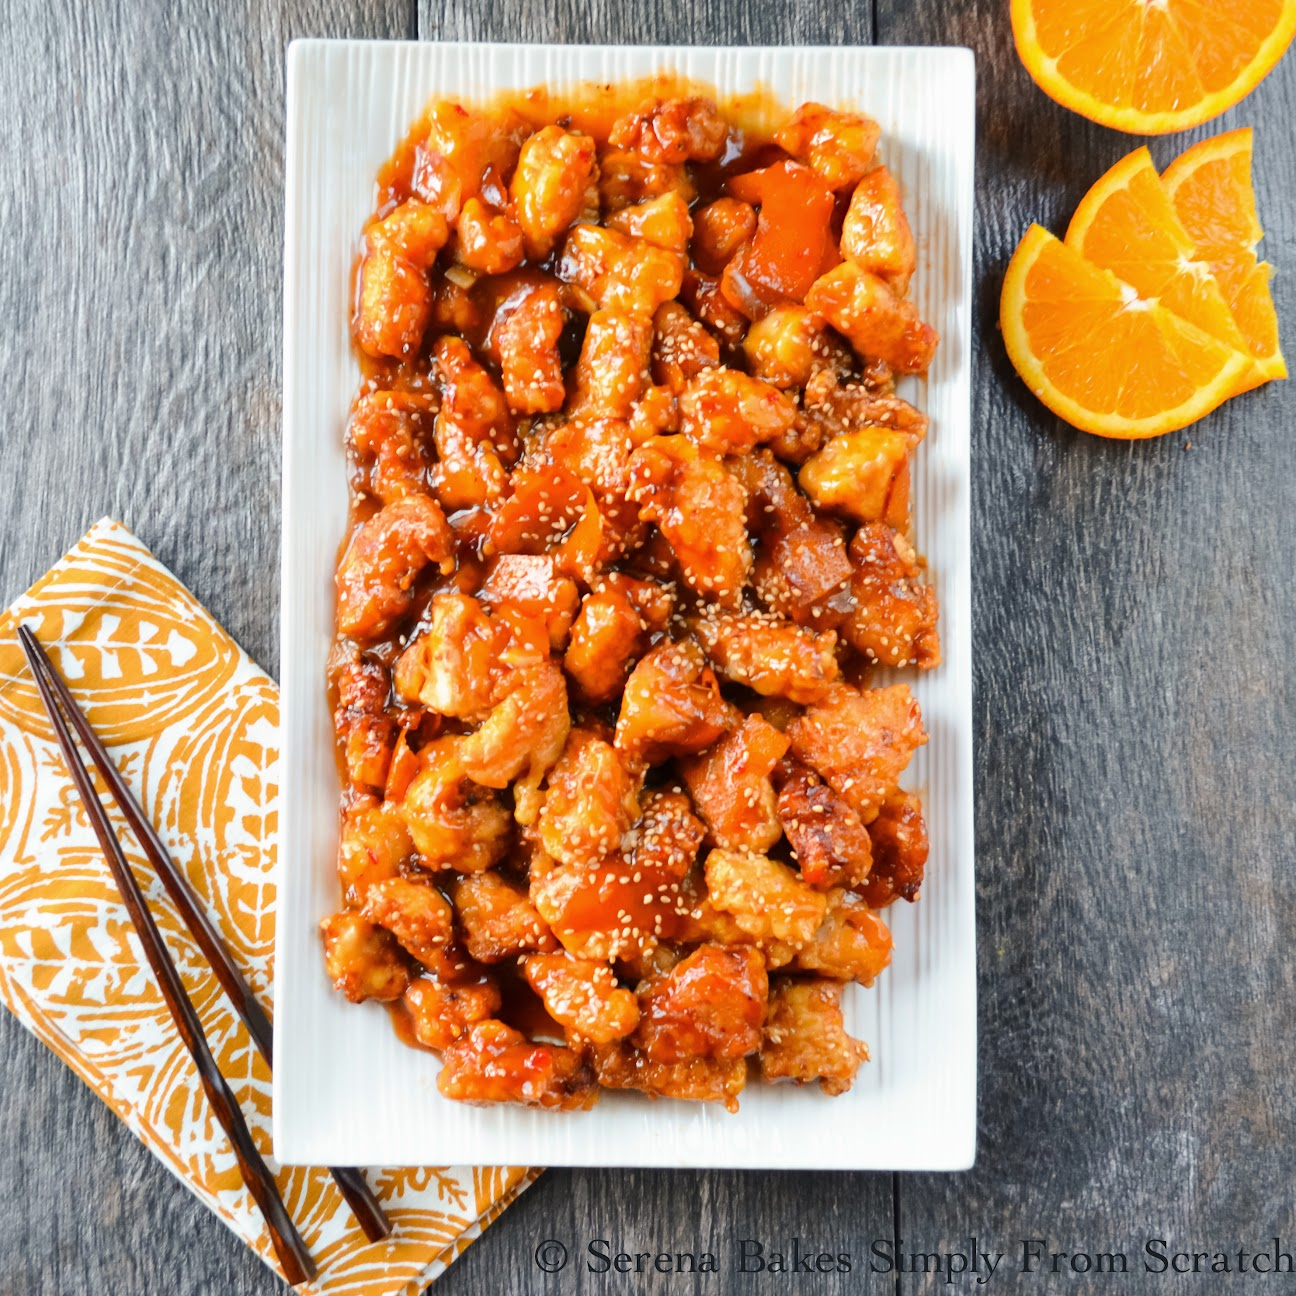 Chinese orange peel chicken gluten free serena bakes simply from chinese orange peel chicken is so much more flavorful then what most restaurants serve you might not go out for chinese food again forumfinder Choice Image